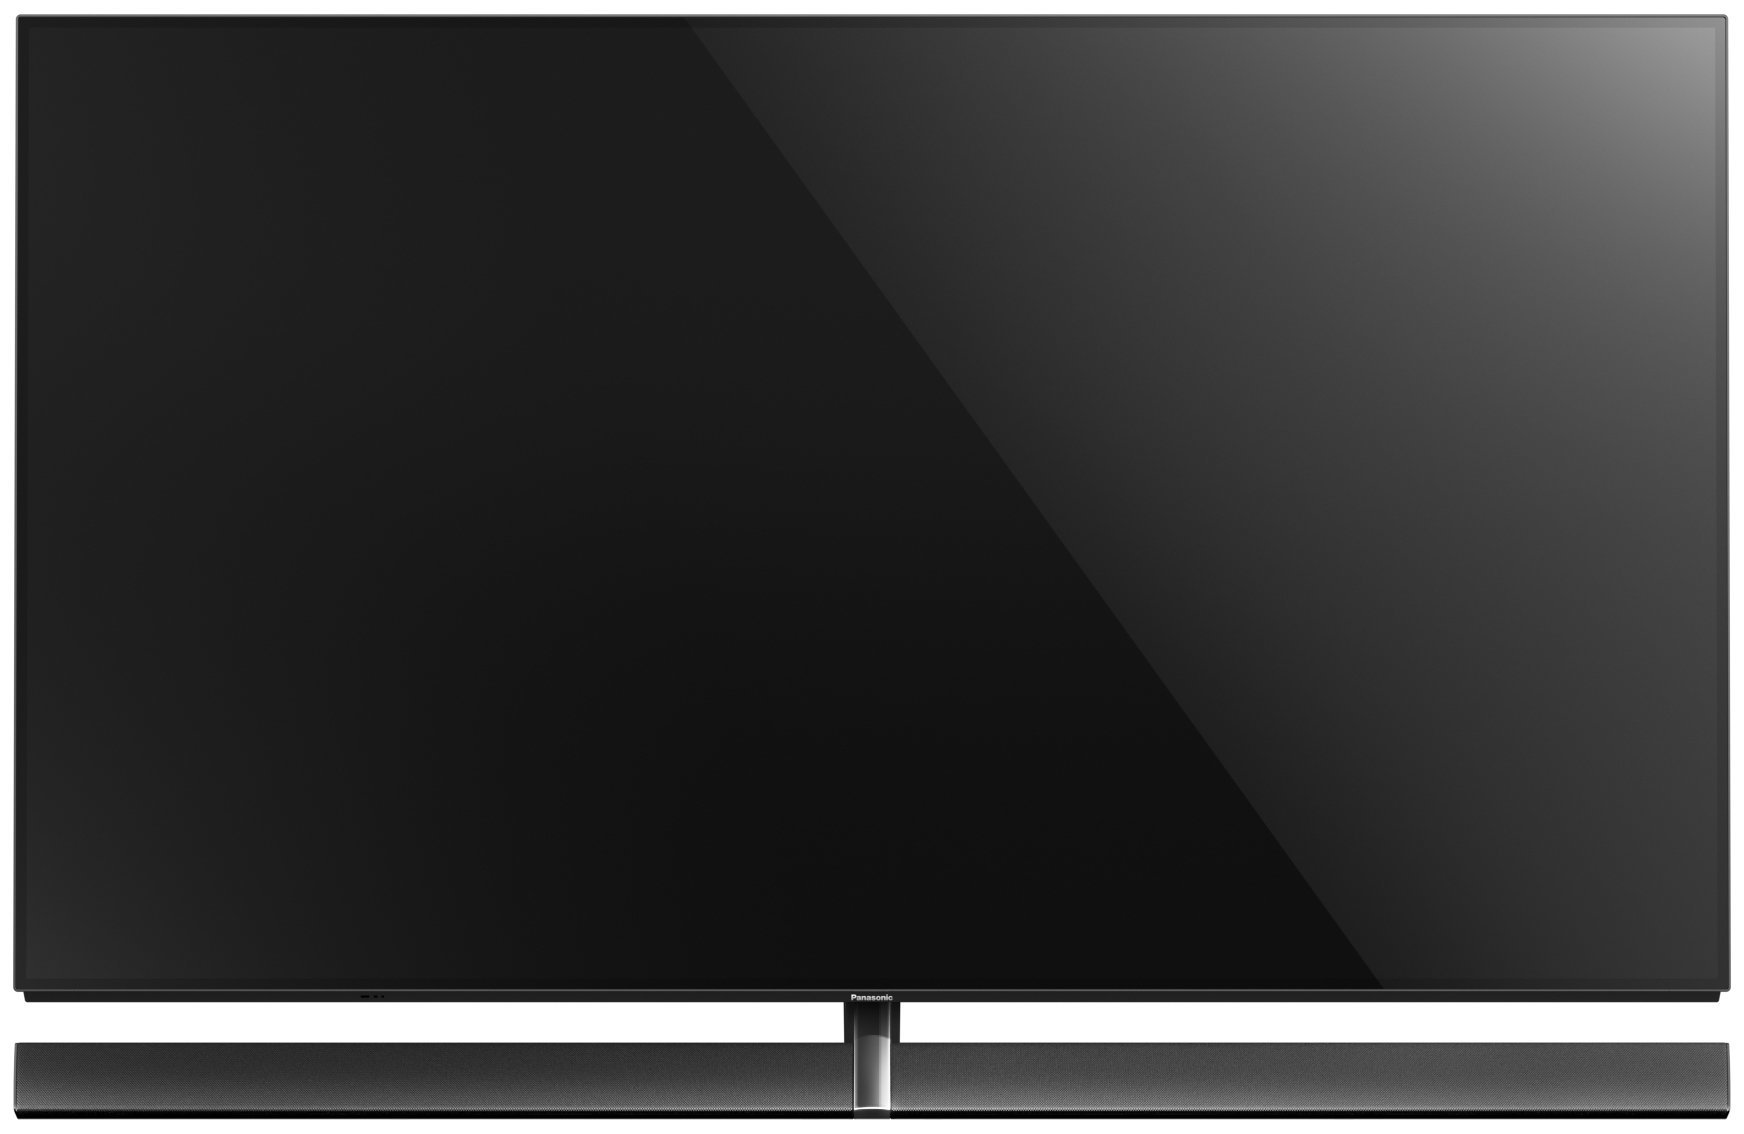 Panasonic TH-65EZ1000U 65 Inch 165cm Smart 4K Ultra HD OLED TV